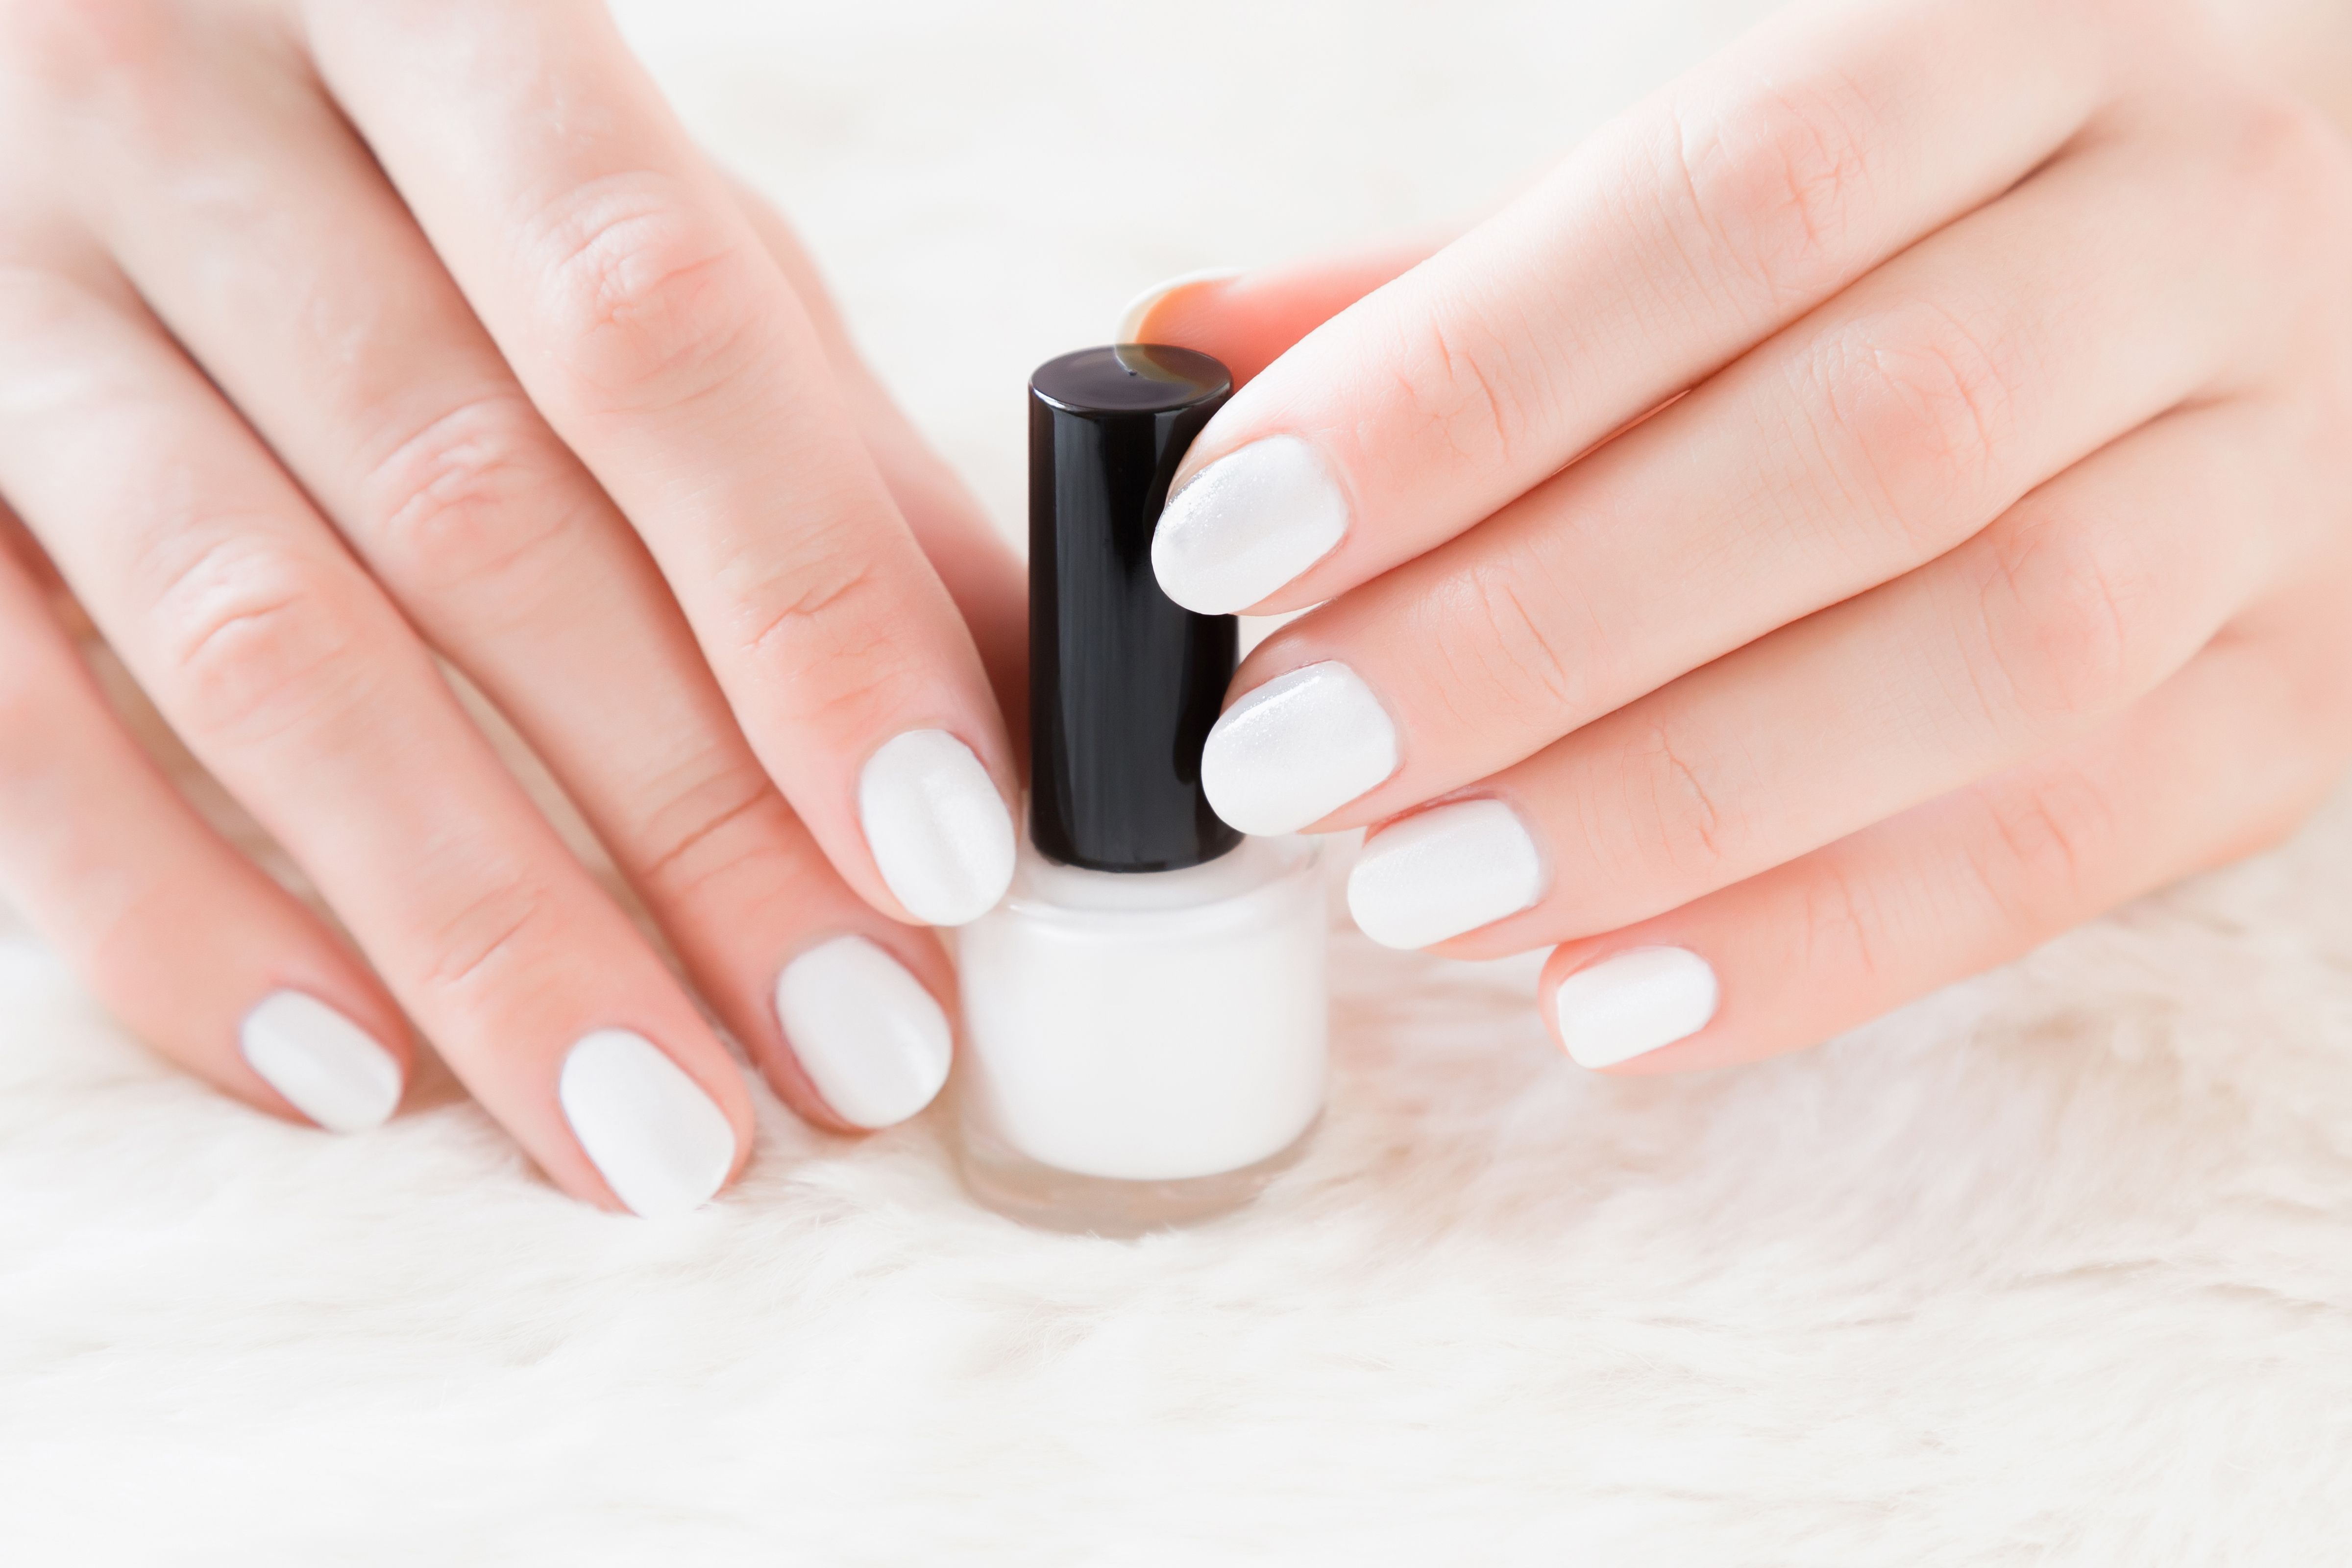 11 Best White Nail Polish Colors to Take Your Manicure to the Next Level